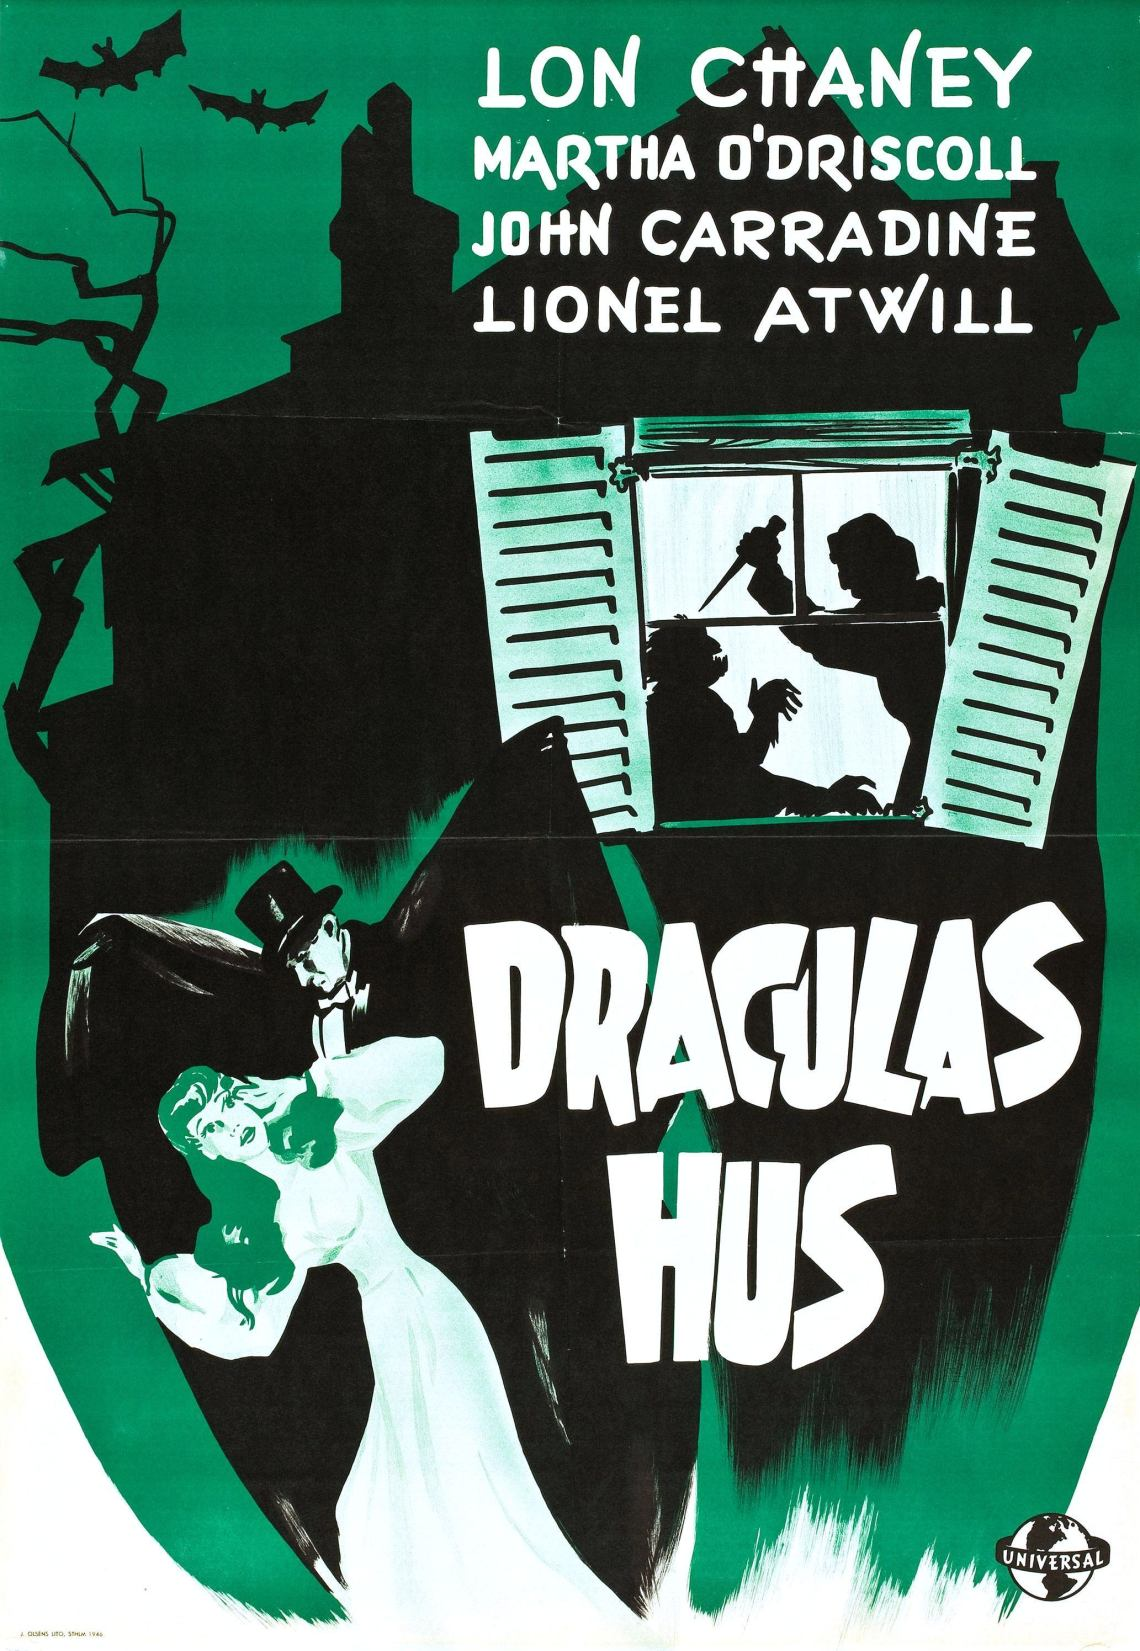 house_of_dracula_poster_08